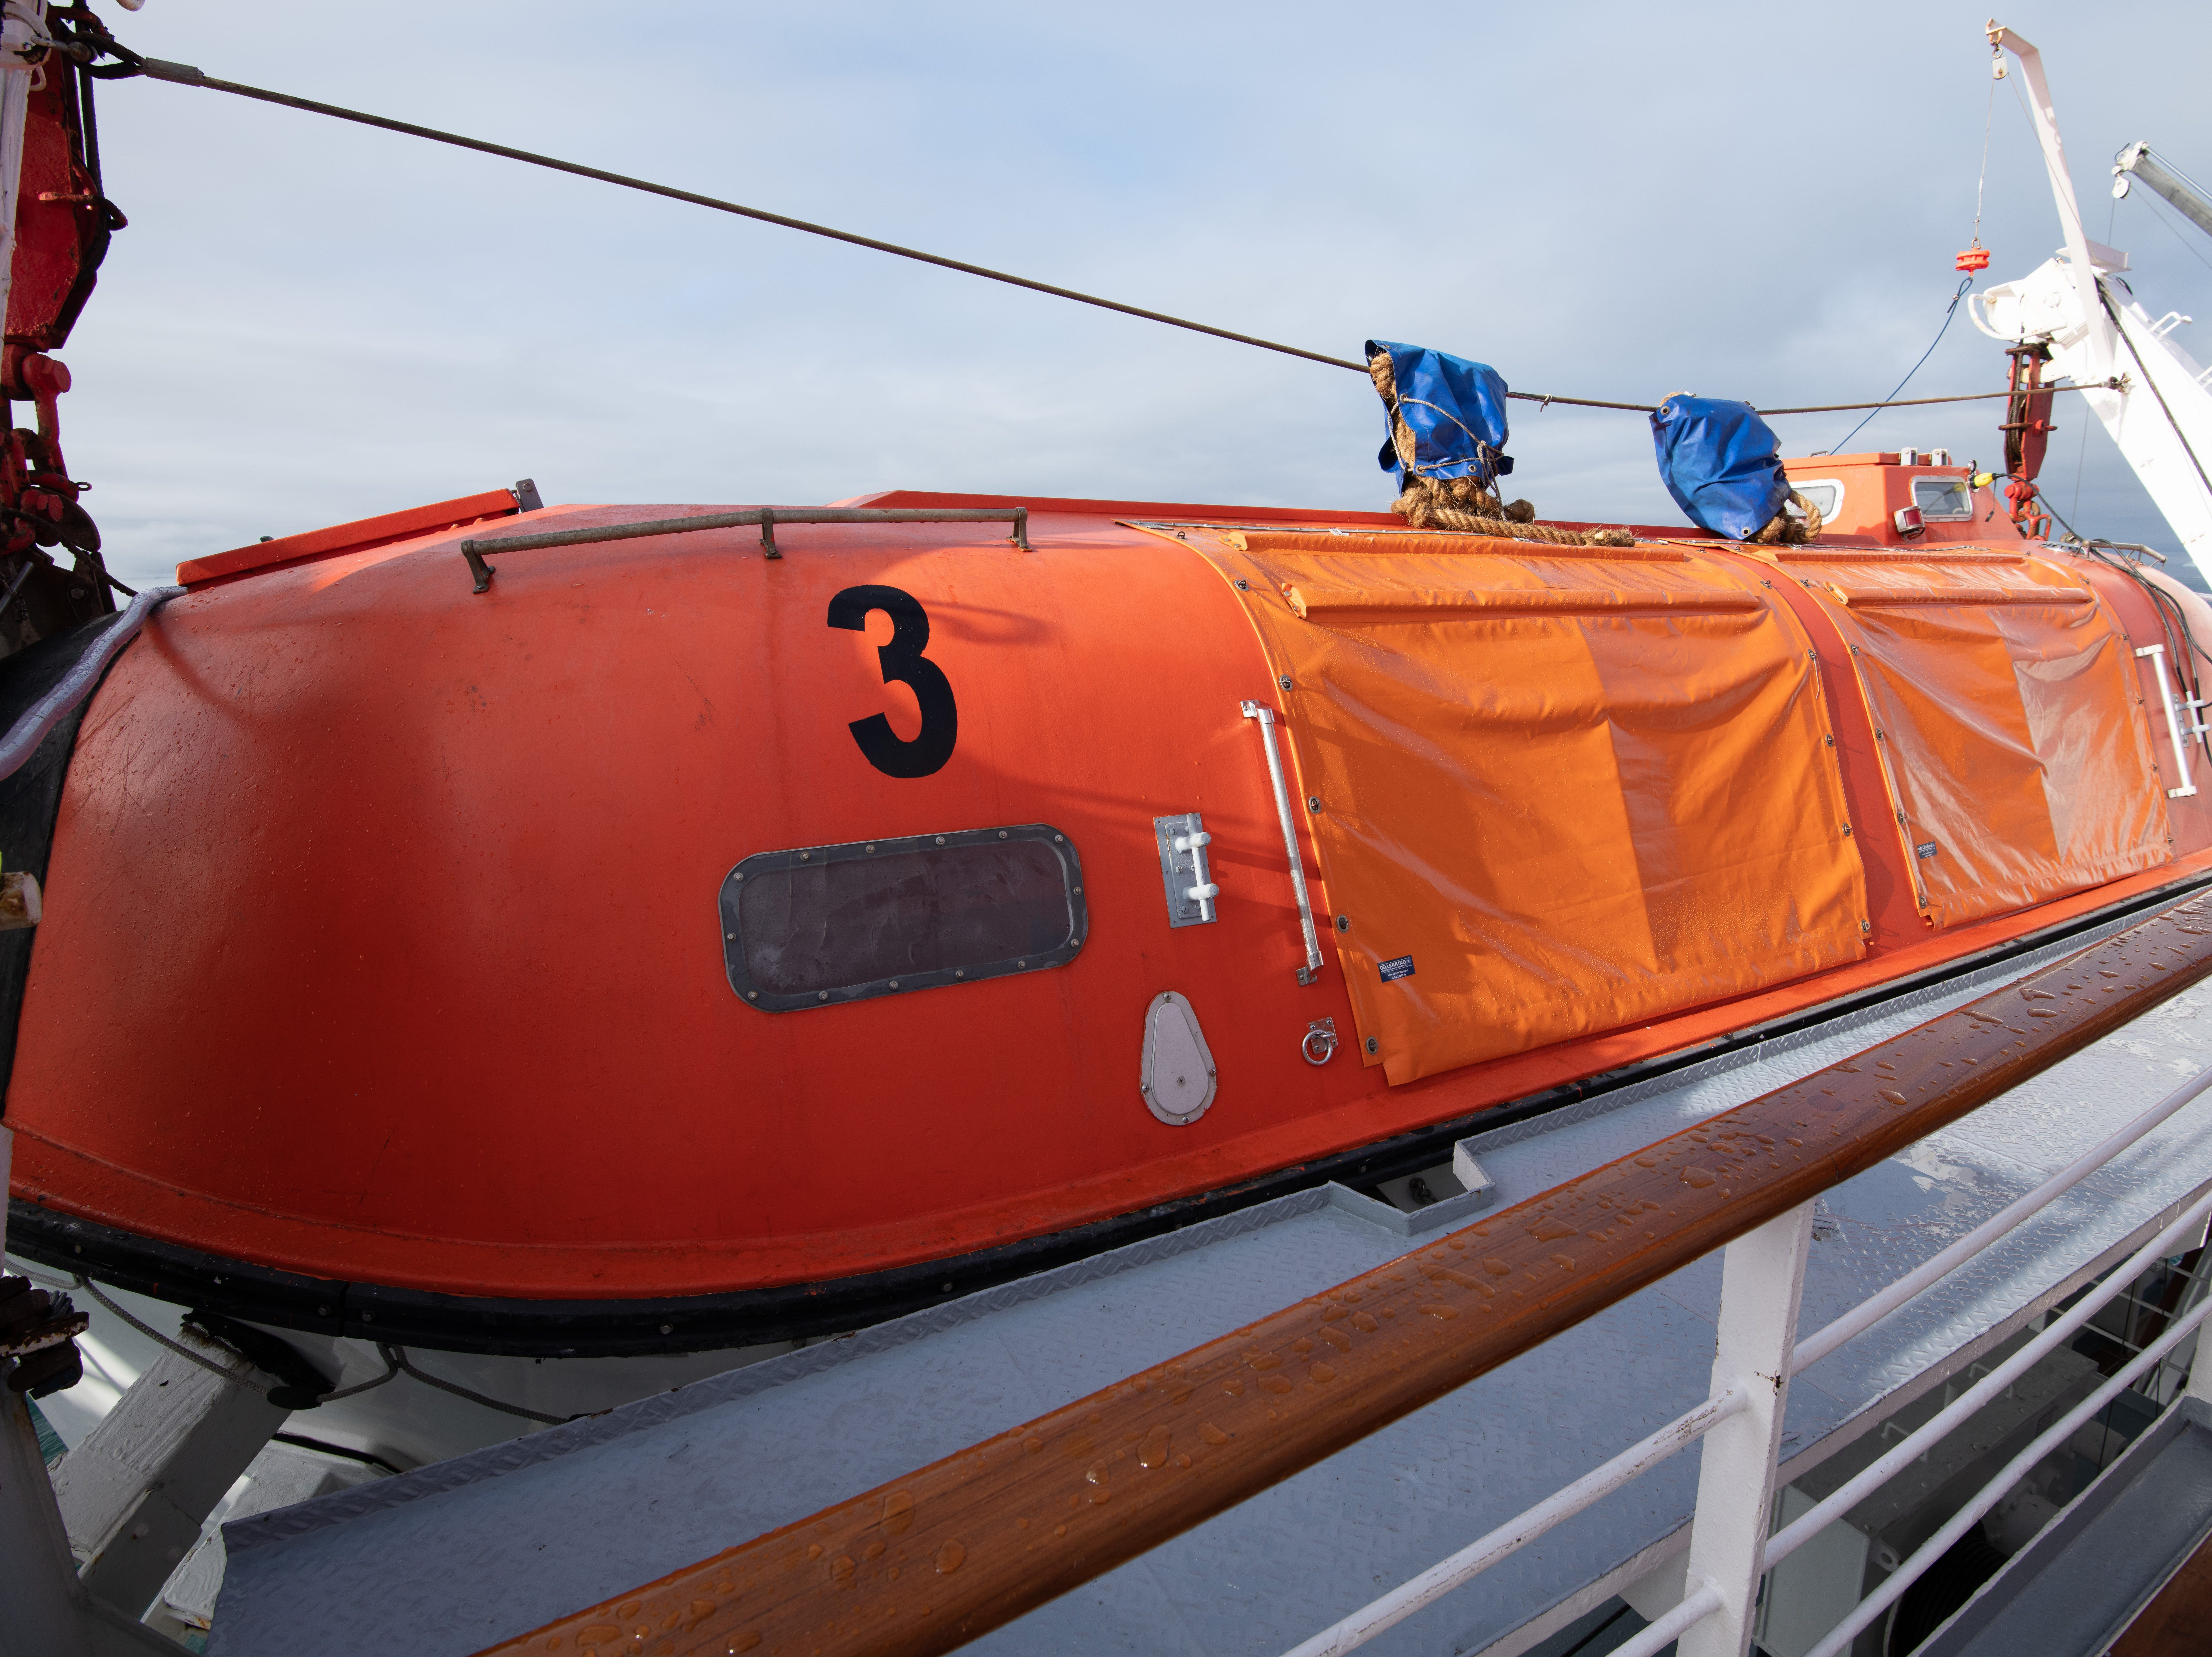 Bremen has four large lifeboats that accommodate all of the ship's passengers.